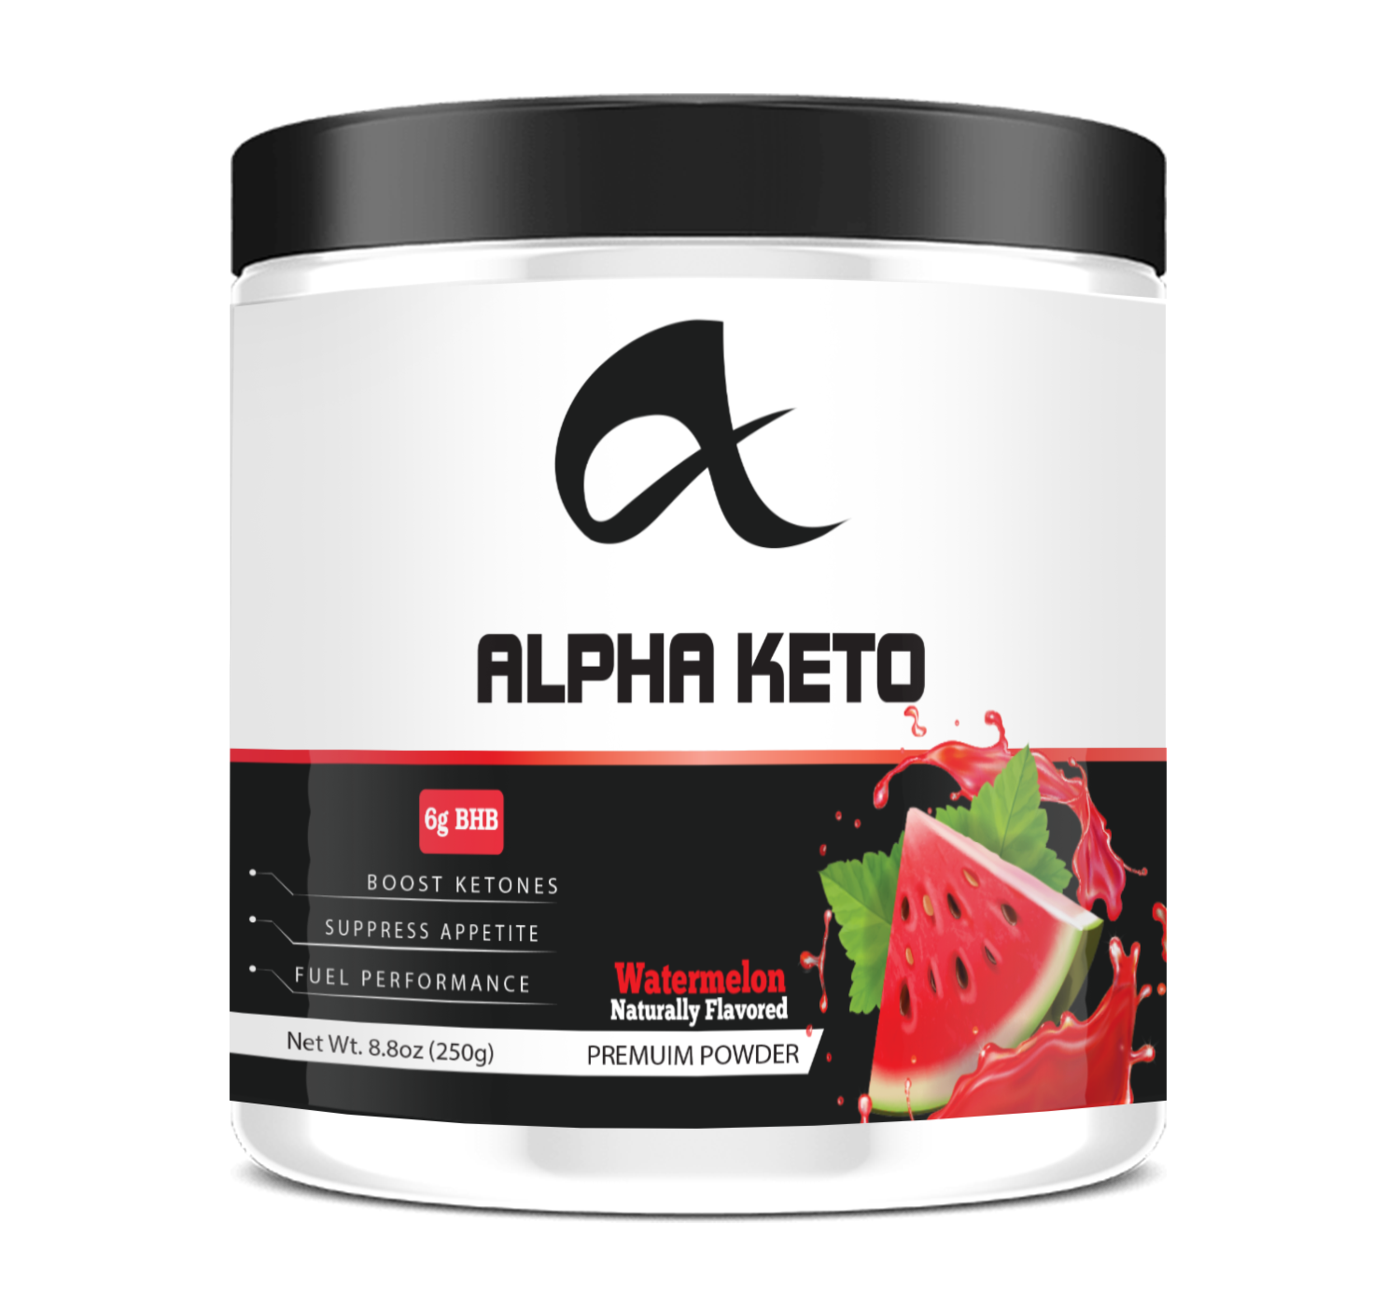 Will keto supplement work as a keto diet?